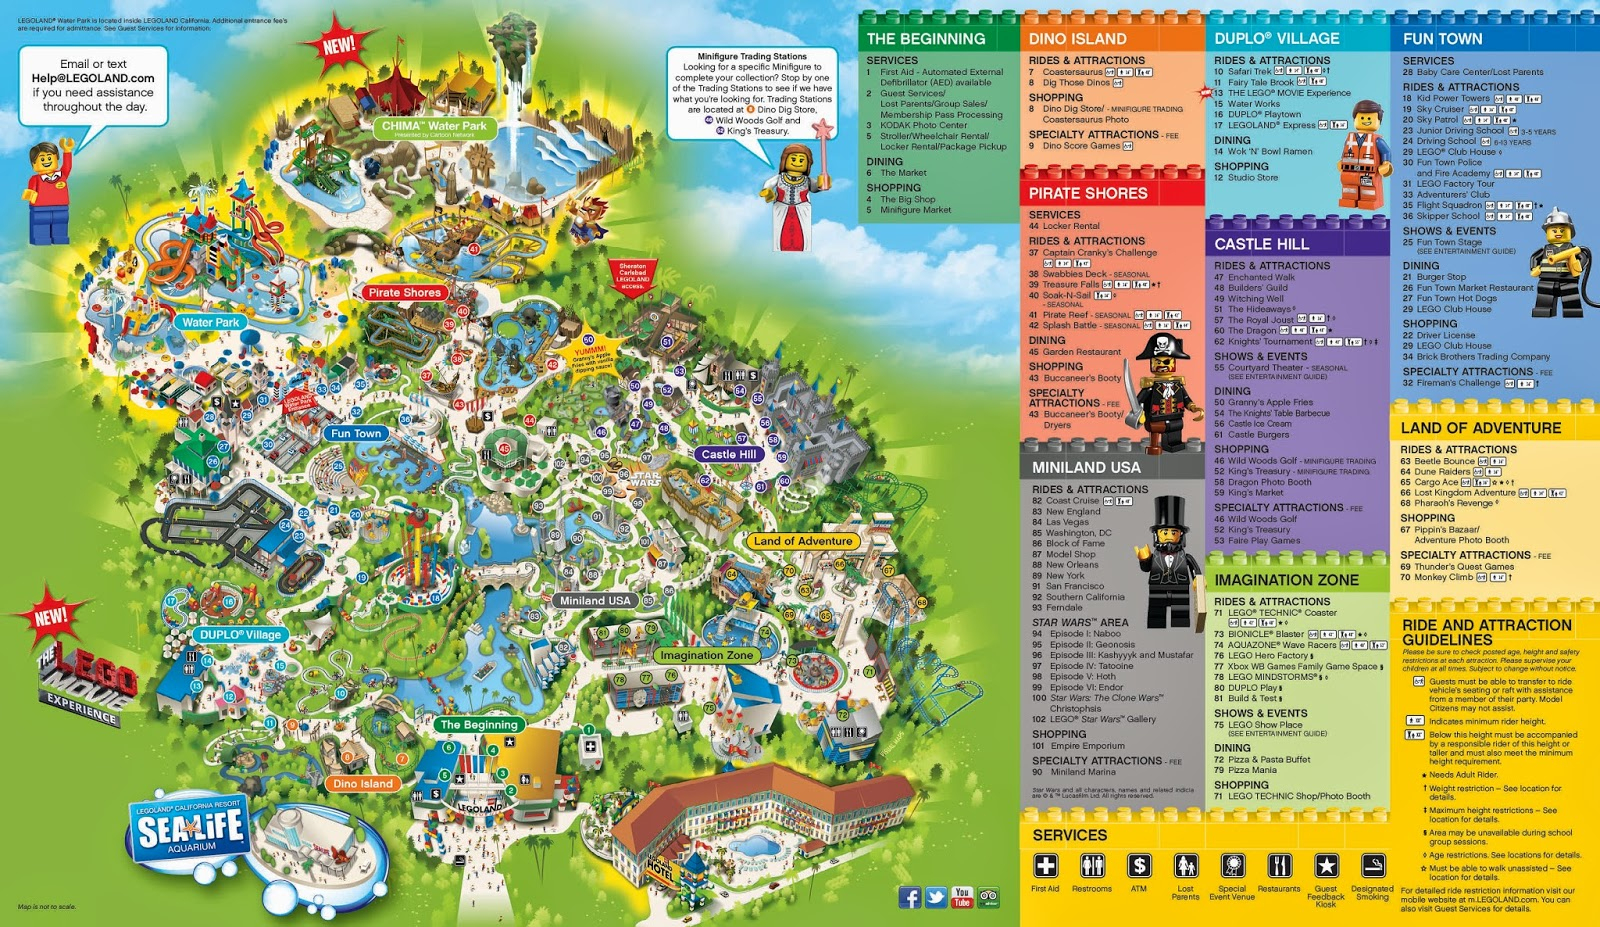 Coming Soon Our Trip To Maps Of California Legoland California - Legoland Map California 2018